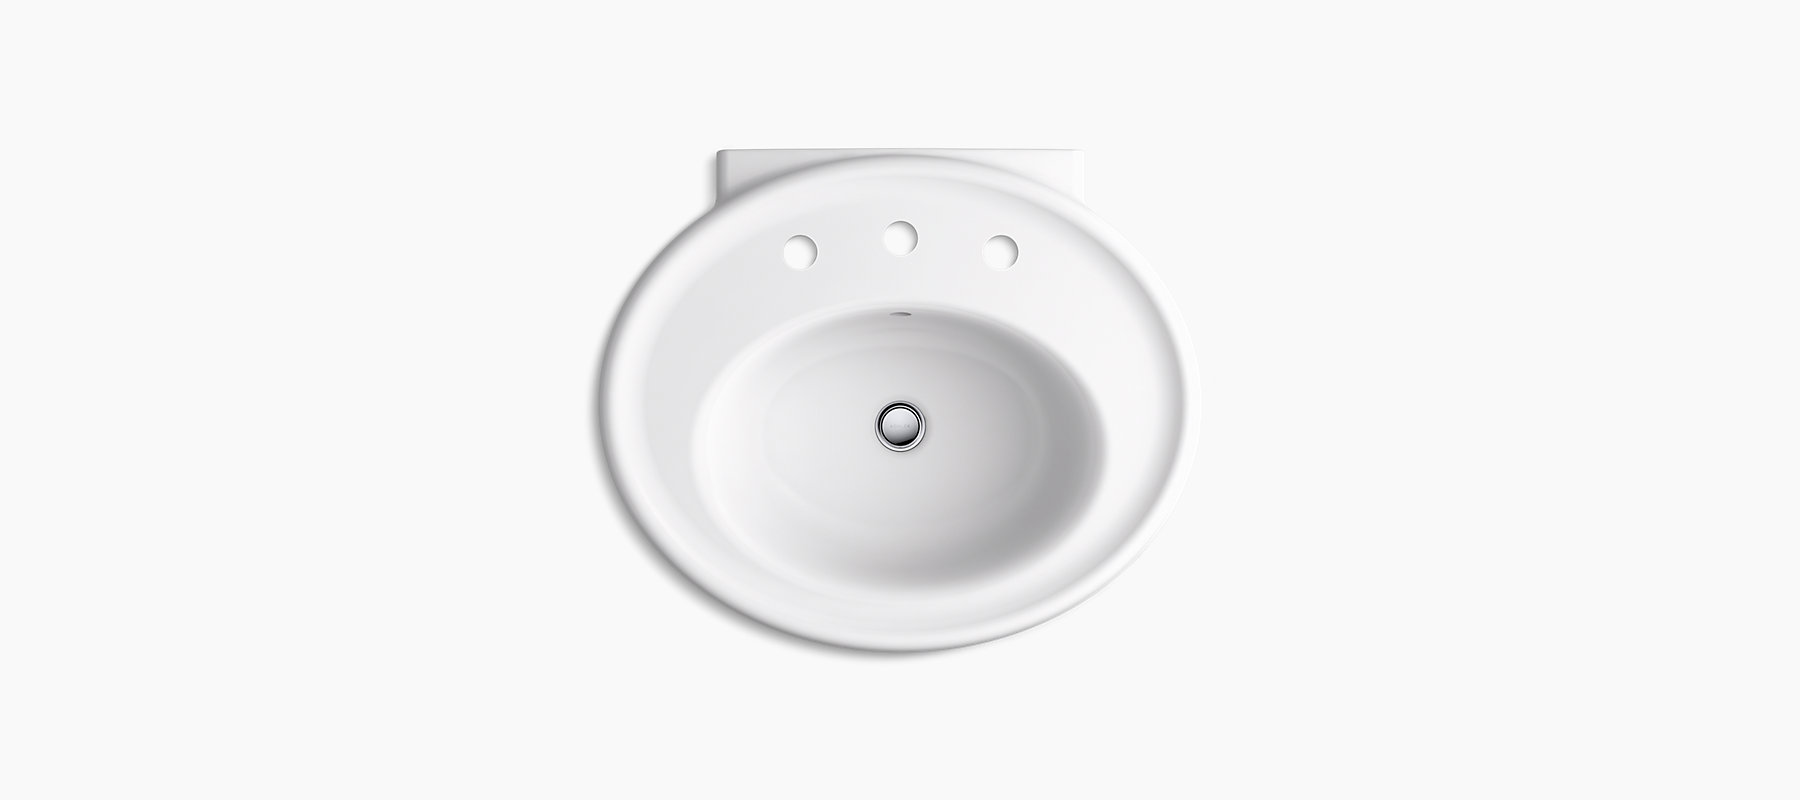 Willamette Pedestal Bathroom Sink K R6385 8 Kohler